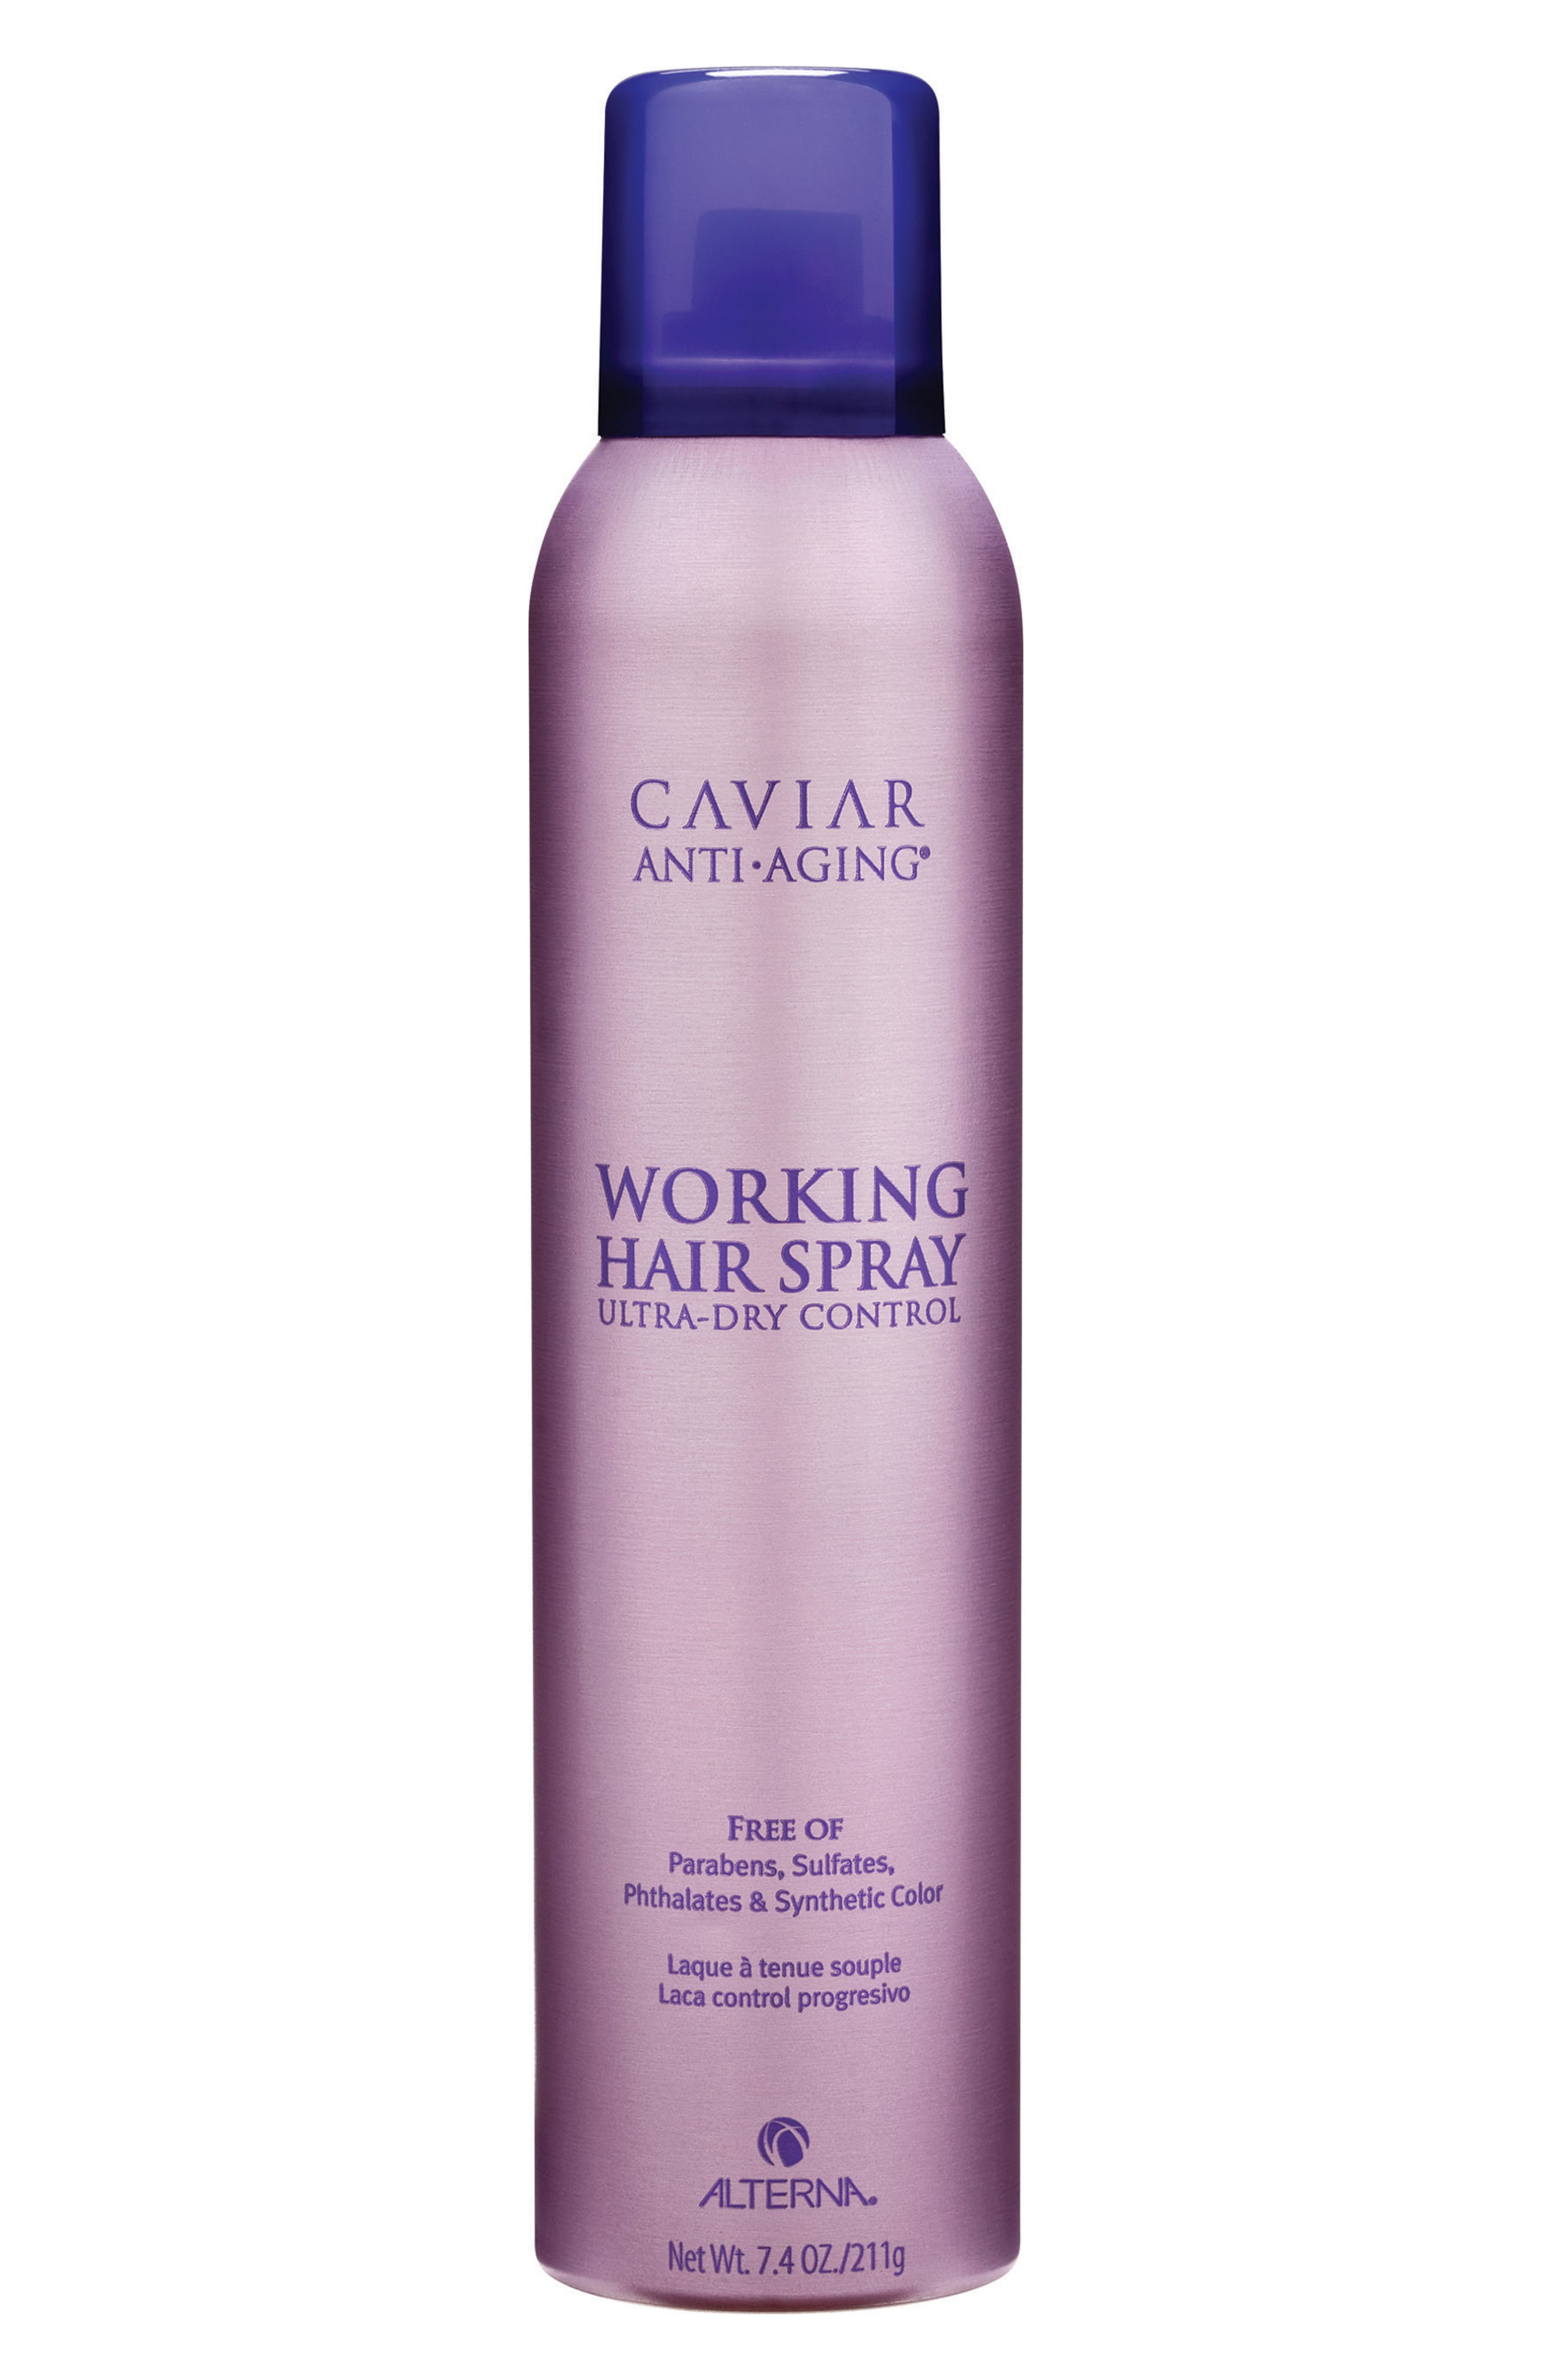 Caviar Anti-Aging Working Hair Spray,                             Main thumbnail 1, color,                             No Color